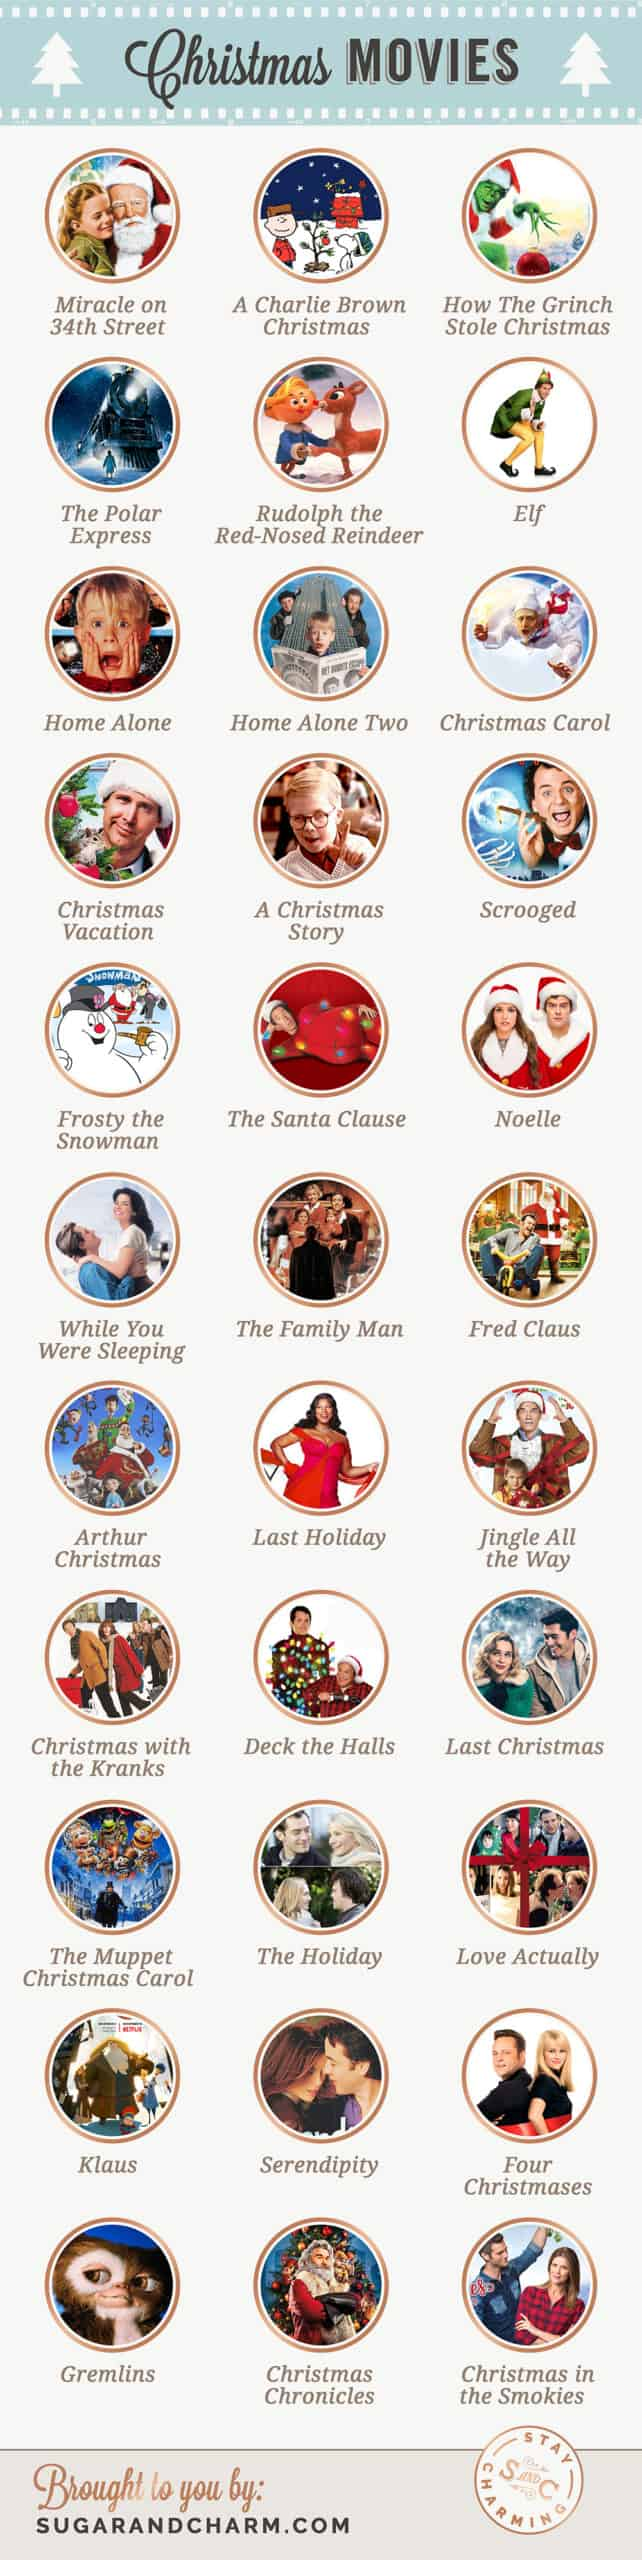 A list of Christmas movies with pictures and titles.